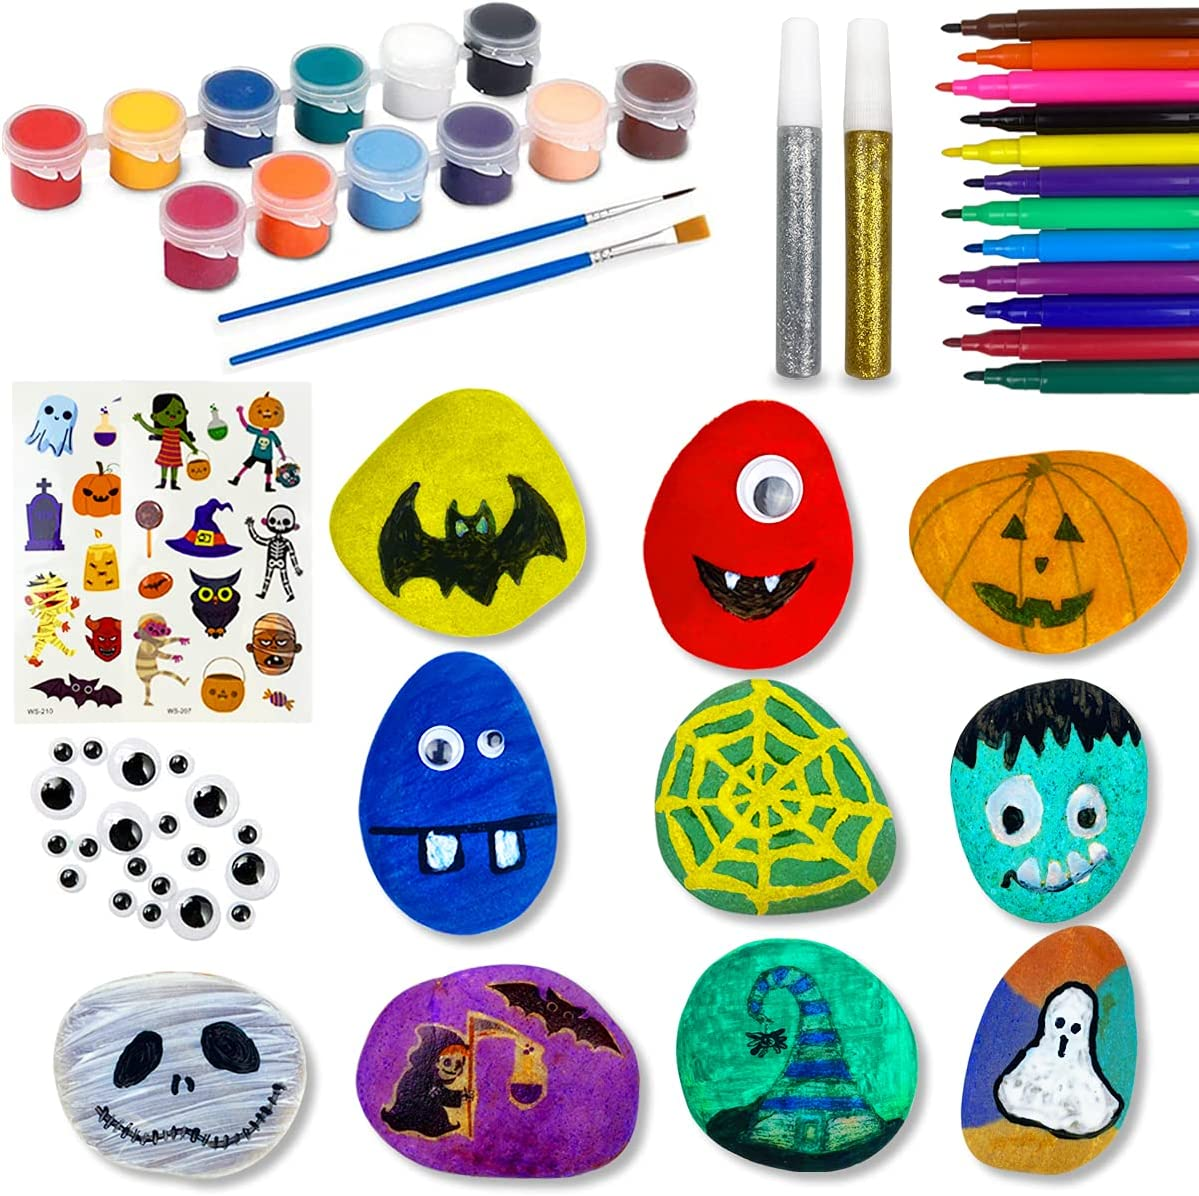 QINGQIU Large special price Halloween Rock Painting Arts Max 79% OFF for Crafts Kit